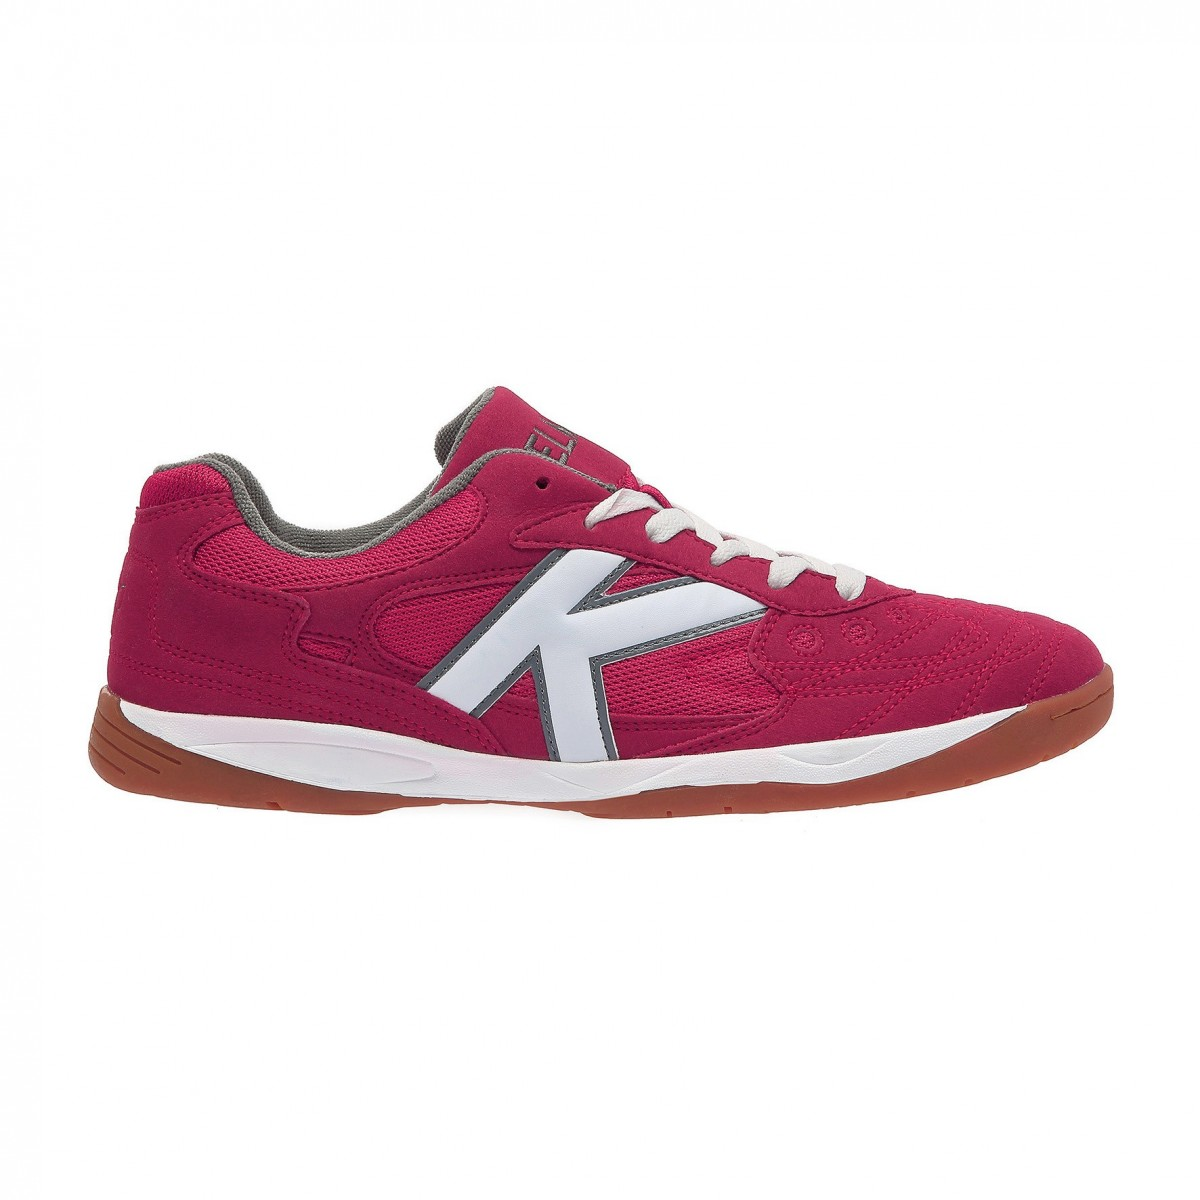 Kelme shop official Indoor Cup pink soccer shoes room Unisex made in Textile-leather-synthetic 55257-130 autumn-I